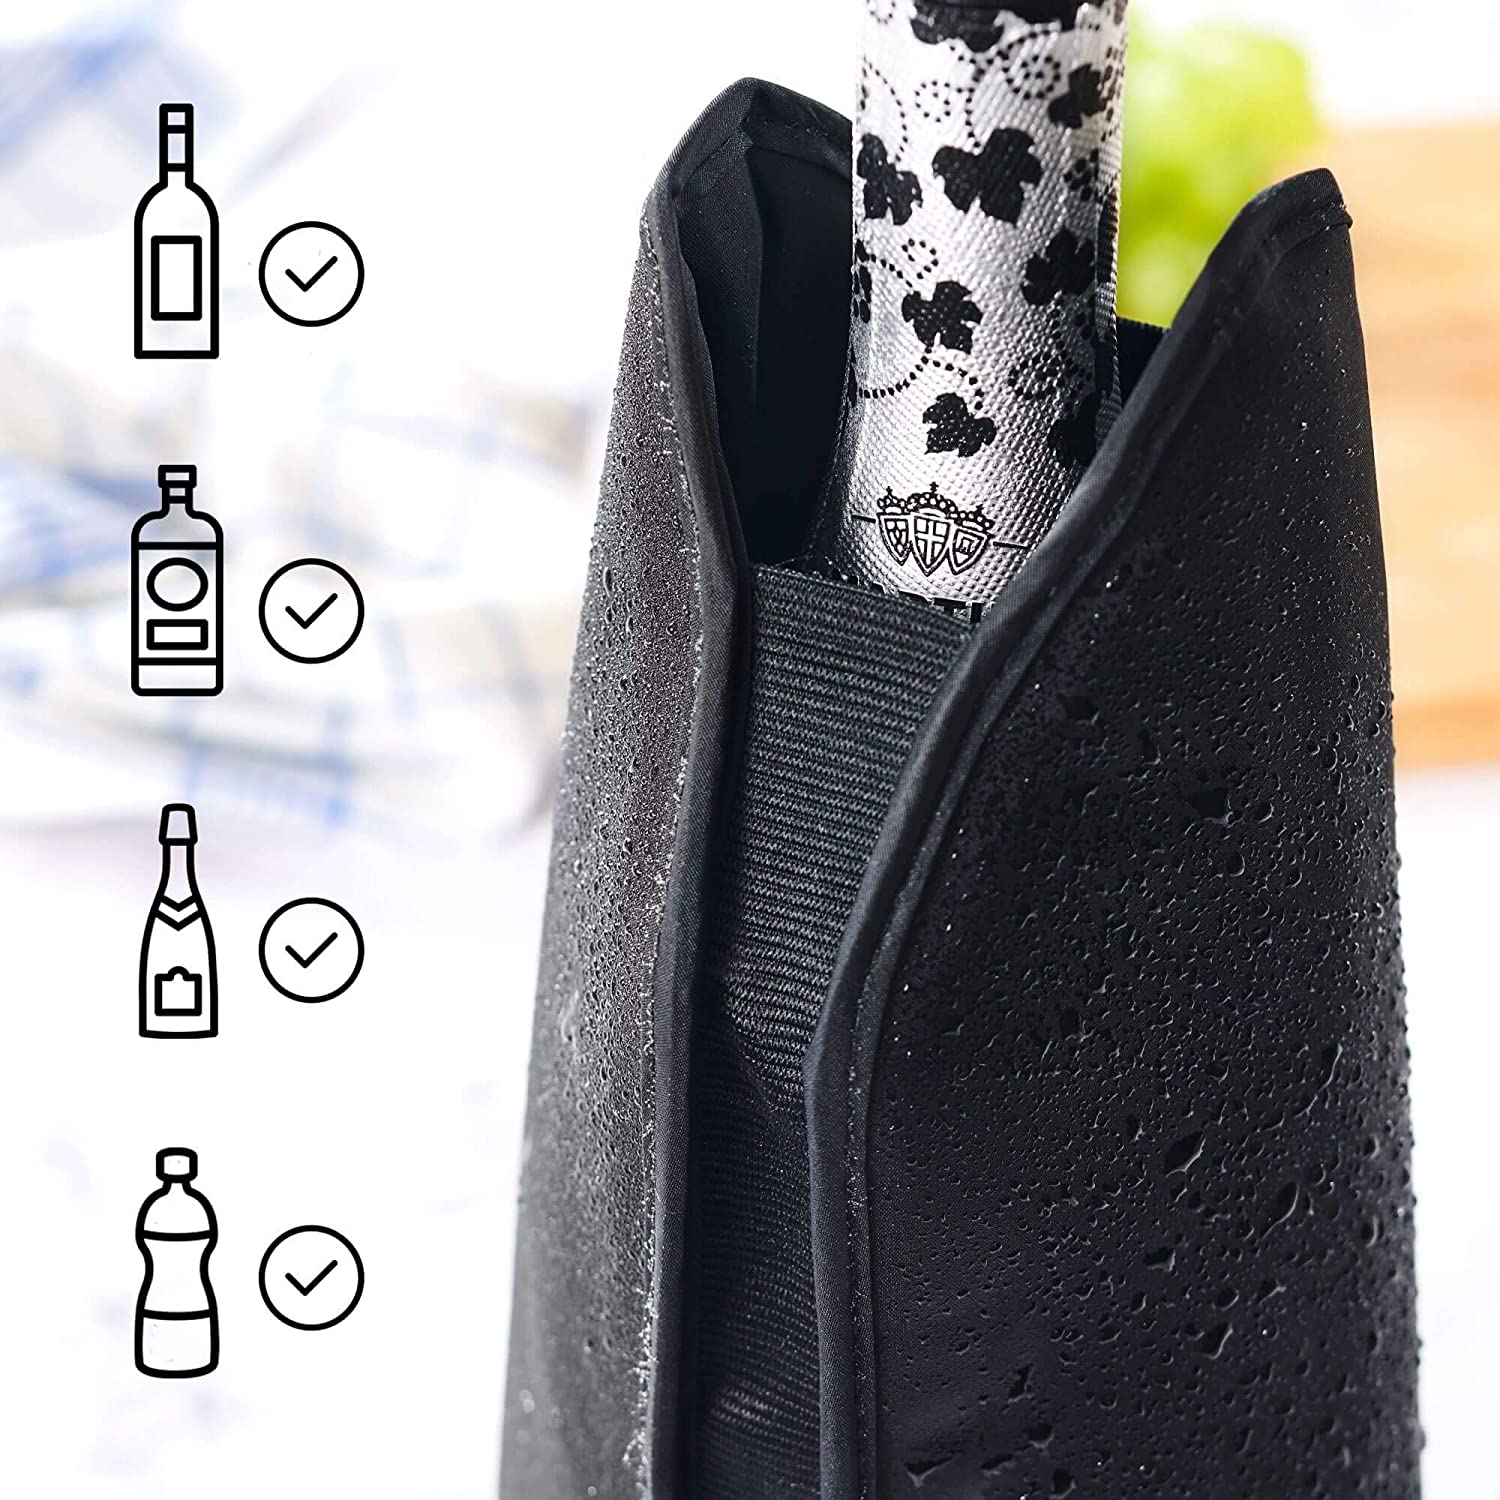 2 Pieces Beer and Water Bottles SILBERTHAL Cooler Sleeves Ice Jackets for Rapid Cooling of Wine Champagne